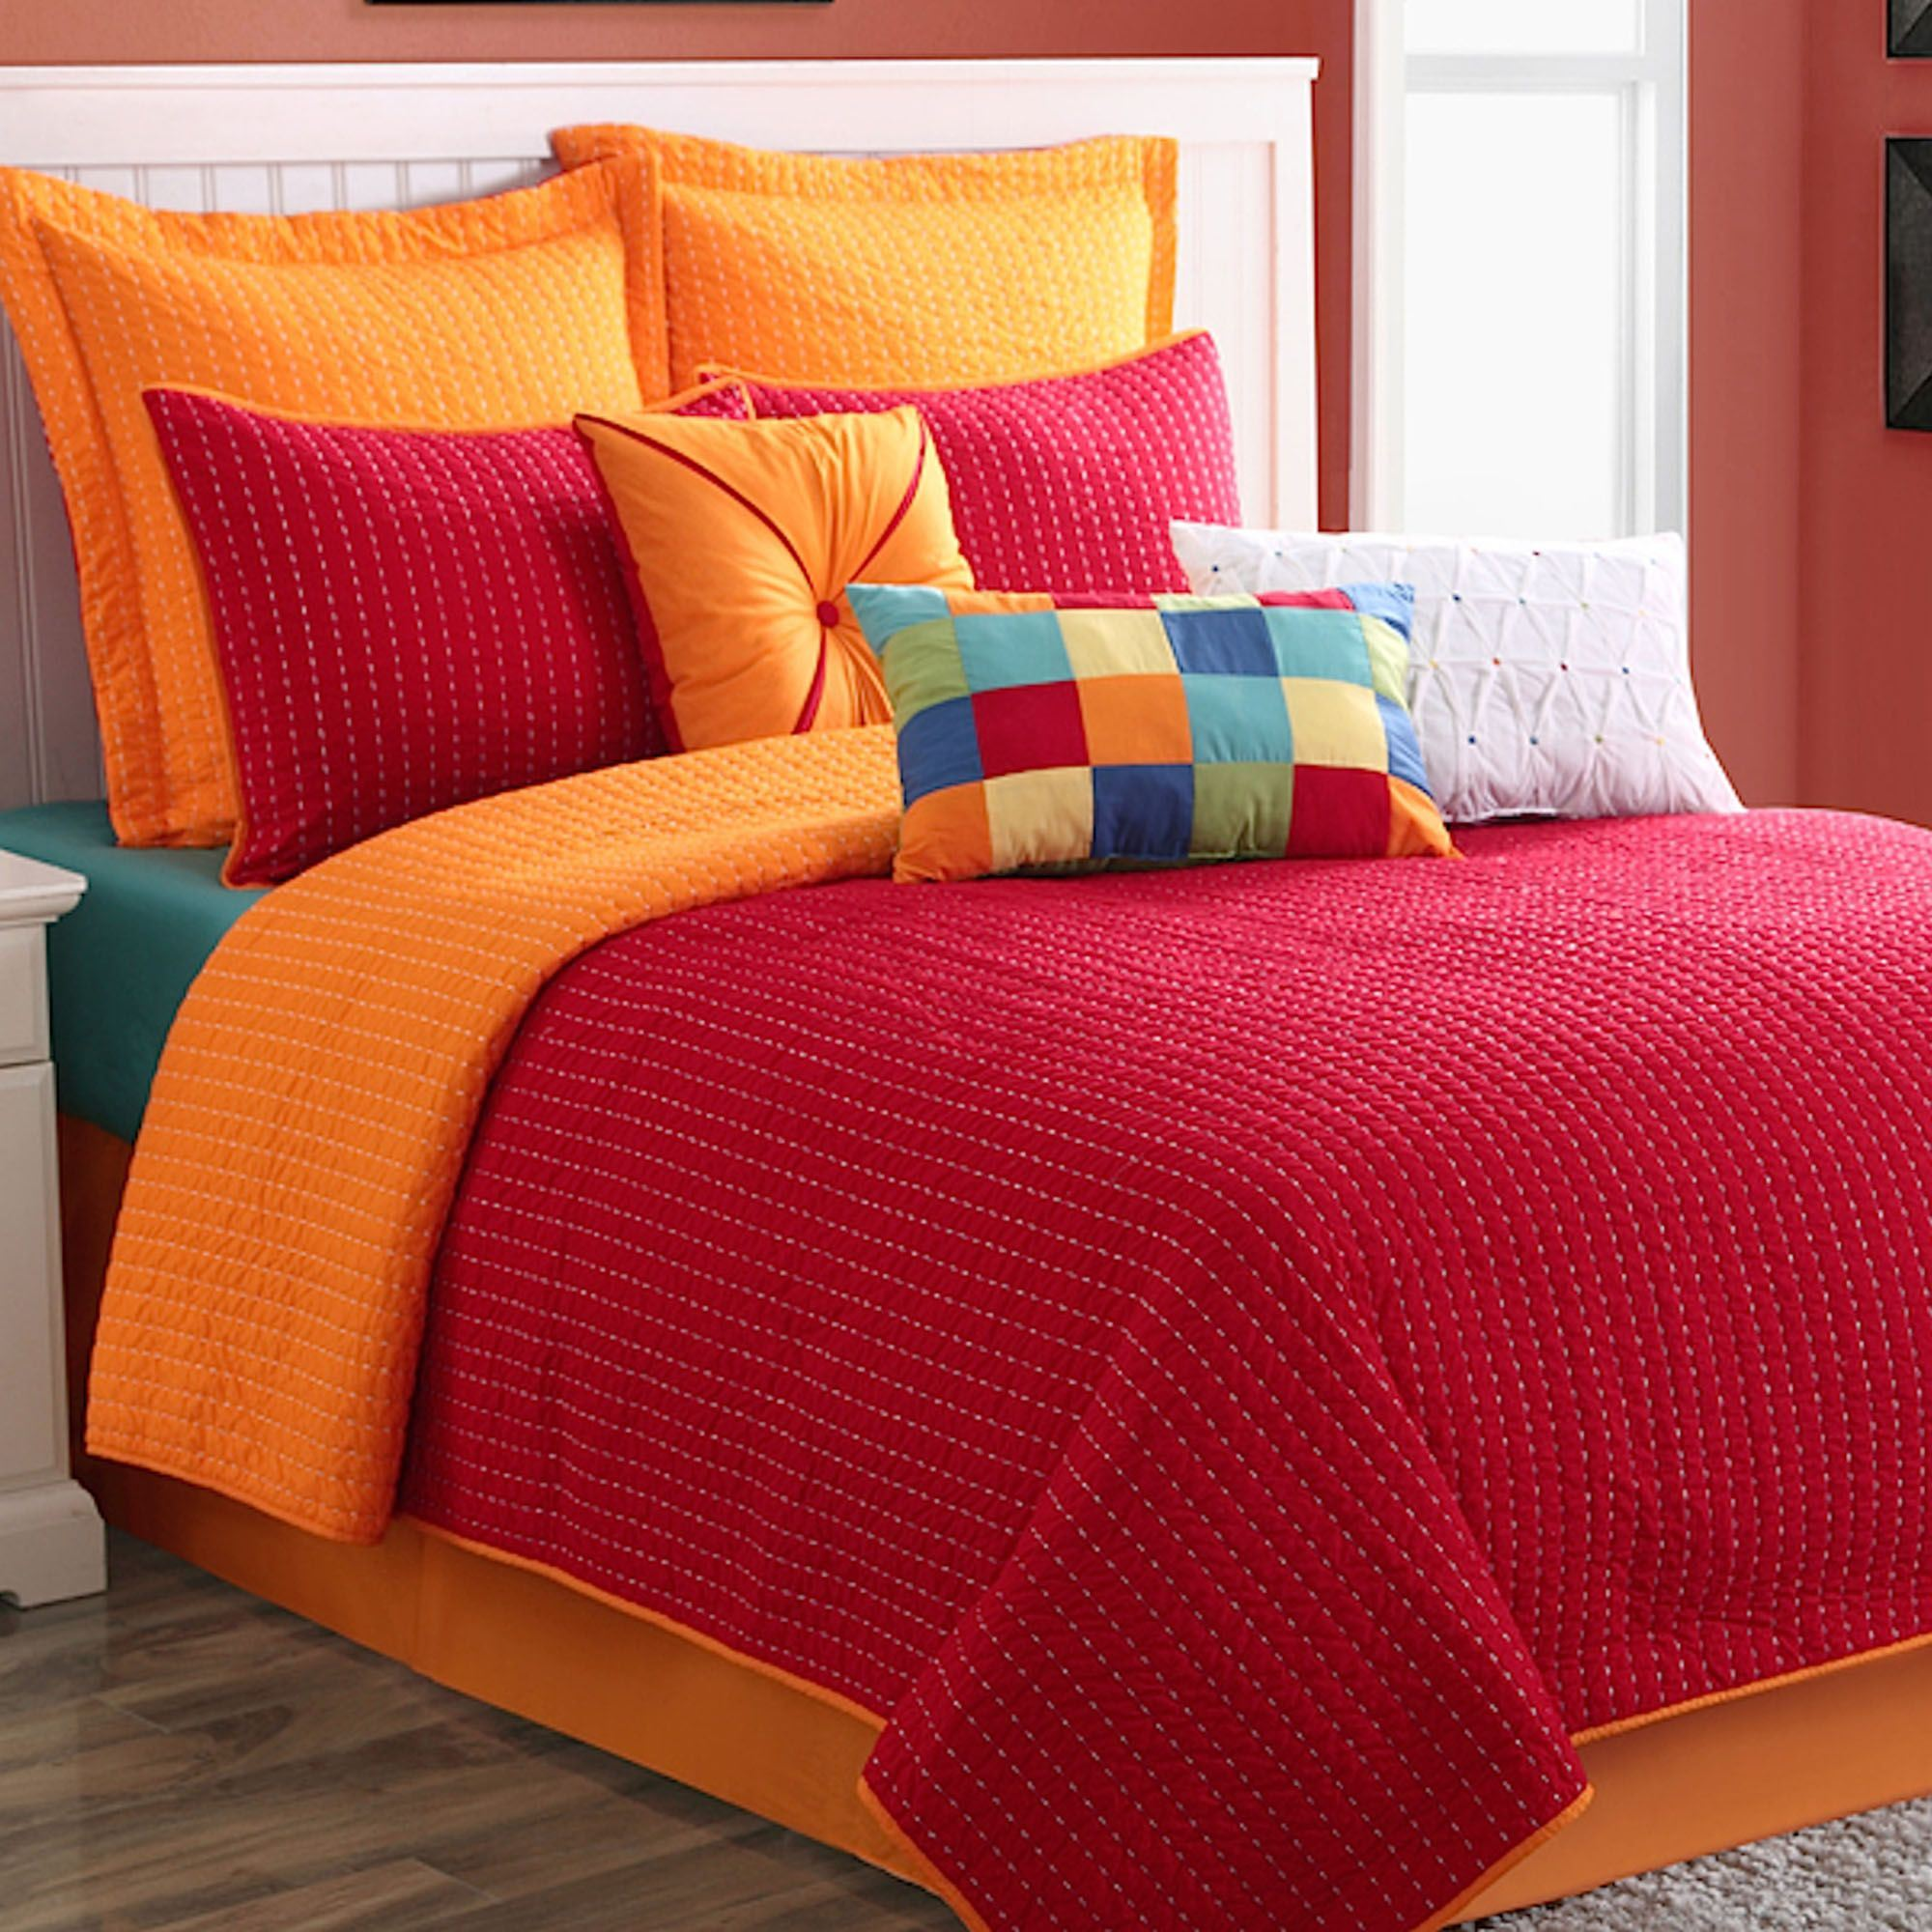 Exceptional Dash Red Orange Coverlet Set